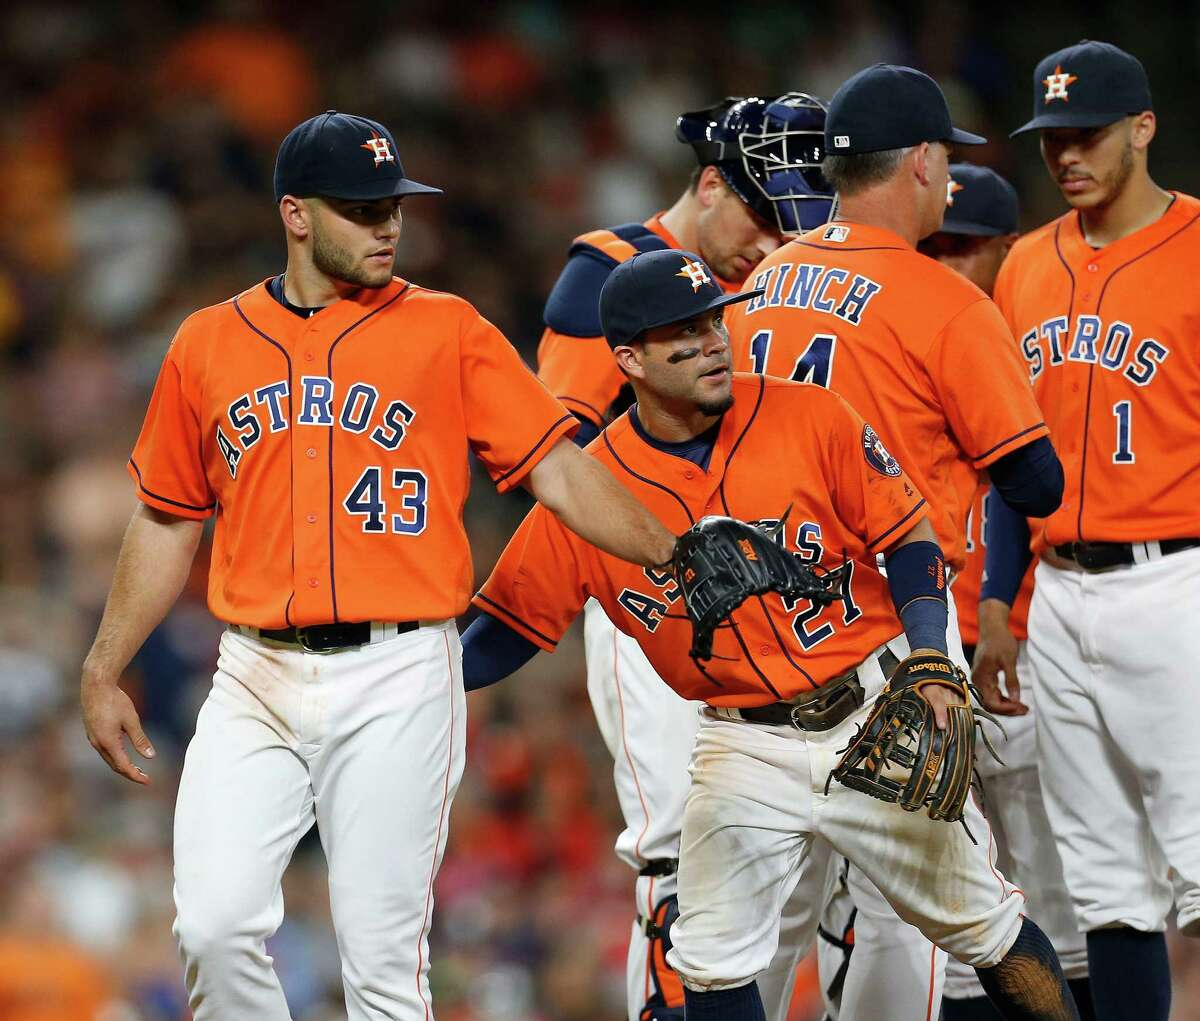 July 22: Astros 2, Angels 1 Houston Astros starting pitcher Lance McCullers (43) reacts as manager A.J. Hinch pulled him during the ninth inning of an MLB baseball game at Minute Maid Park, Friday, July 22, 2016, in Houston.